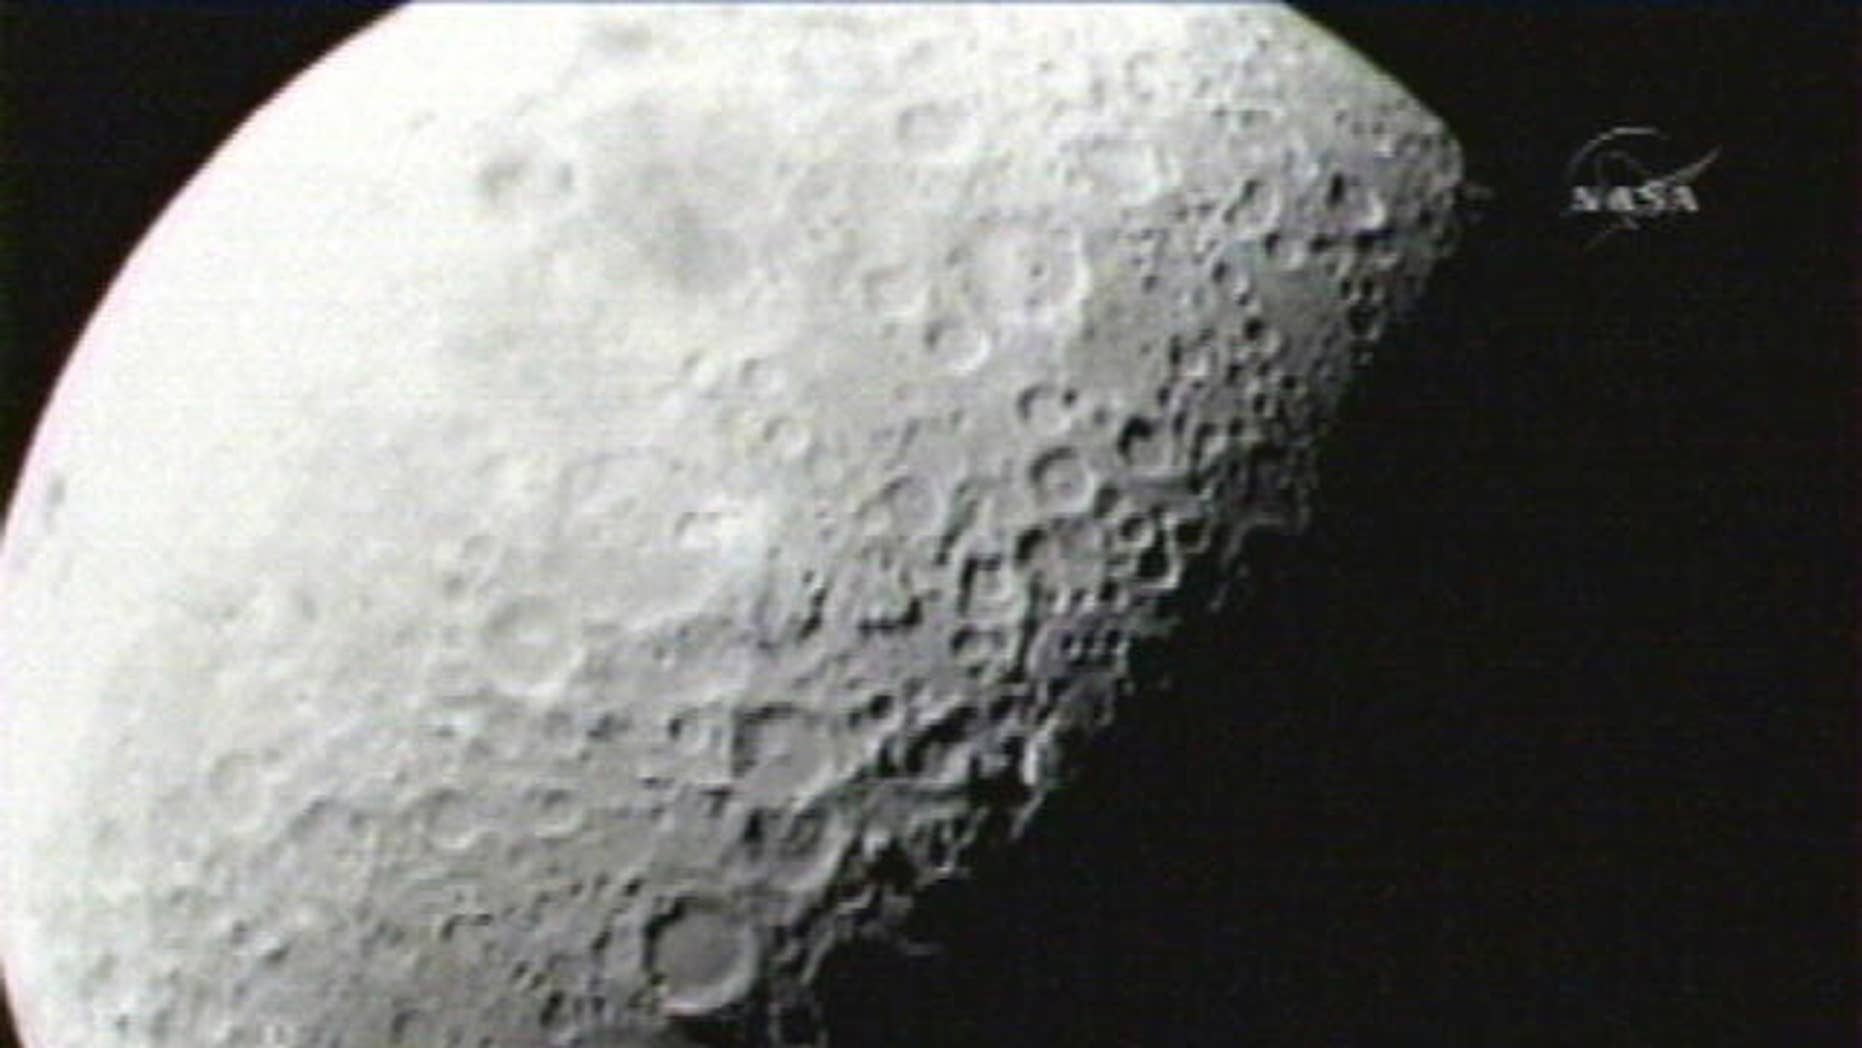 This image provided by NASA shows the first image taken of the moon from the Lunar Crater Observation and Sensing Satellite Friday morning Oct. 9, 2009. Two NASA spacecraft are barreling toward the moon at twice the speed of a bullet, about to crash into a lunar crater in a search for ice. (AP Photo/NASA)